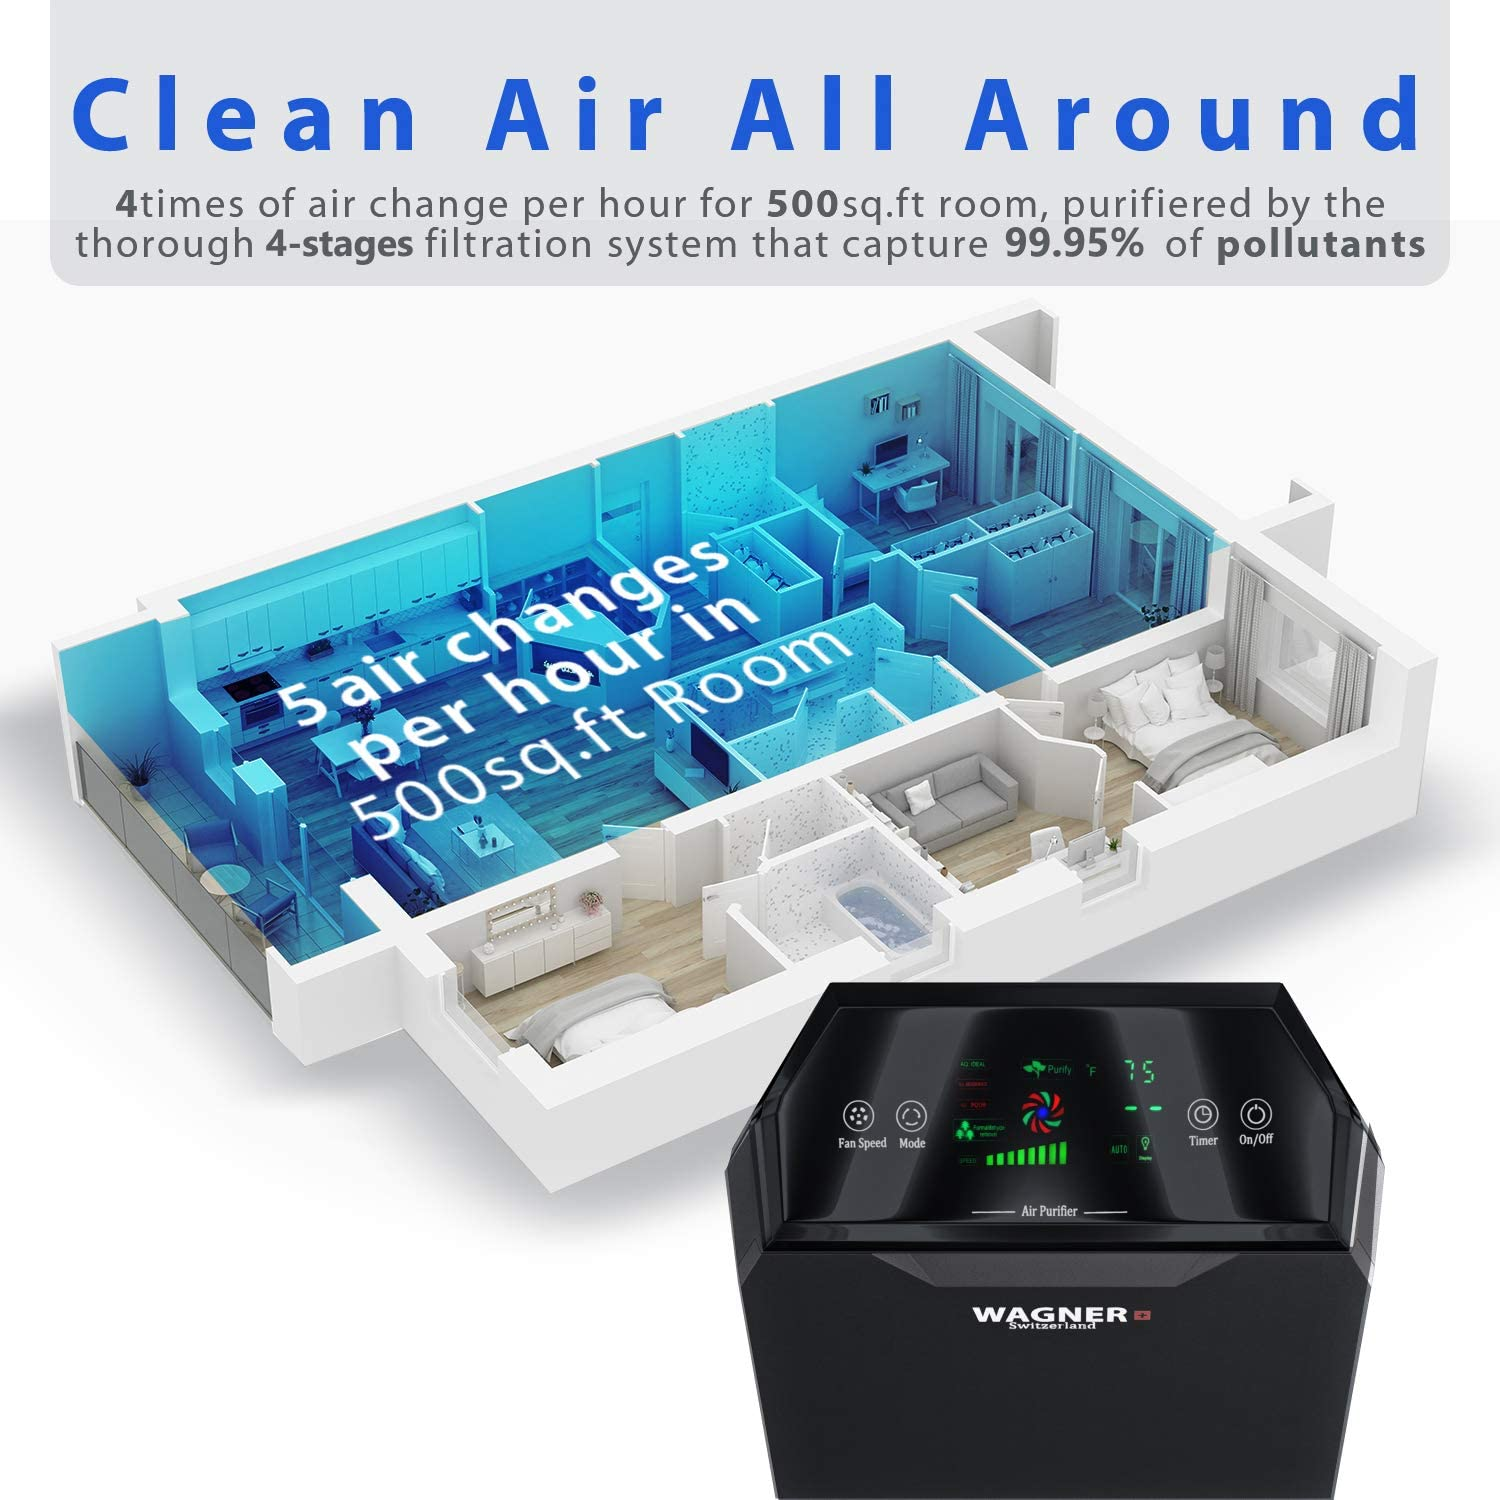 White Allergens Odors Pet Dander Rooms WAGNER Switzerland Air Purifier WA777 HEPA-13 Medical Grade Filter Smoke etc. i-Sense air Quality Monitor for 500 sq.ft Germs Removes Mold